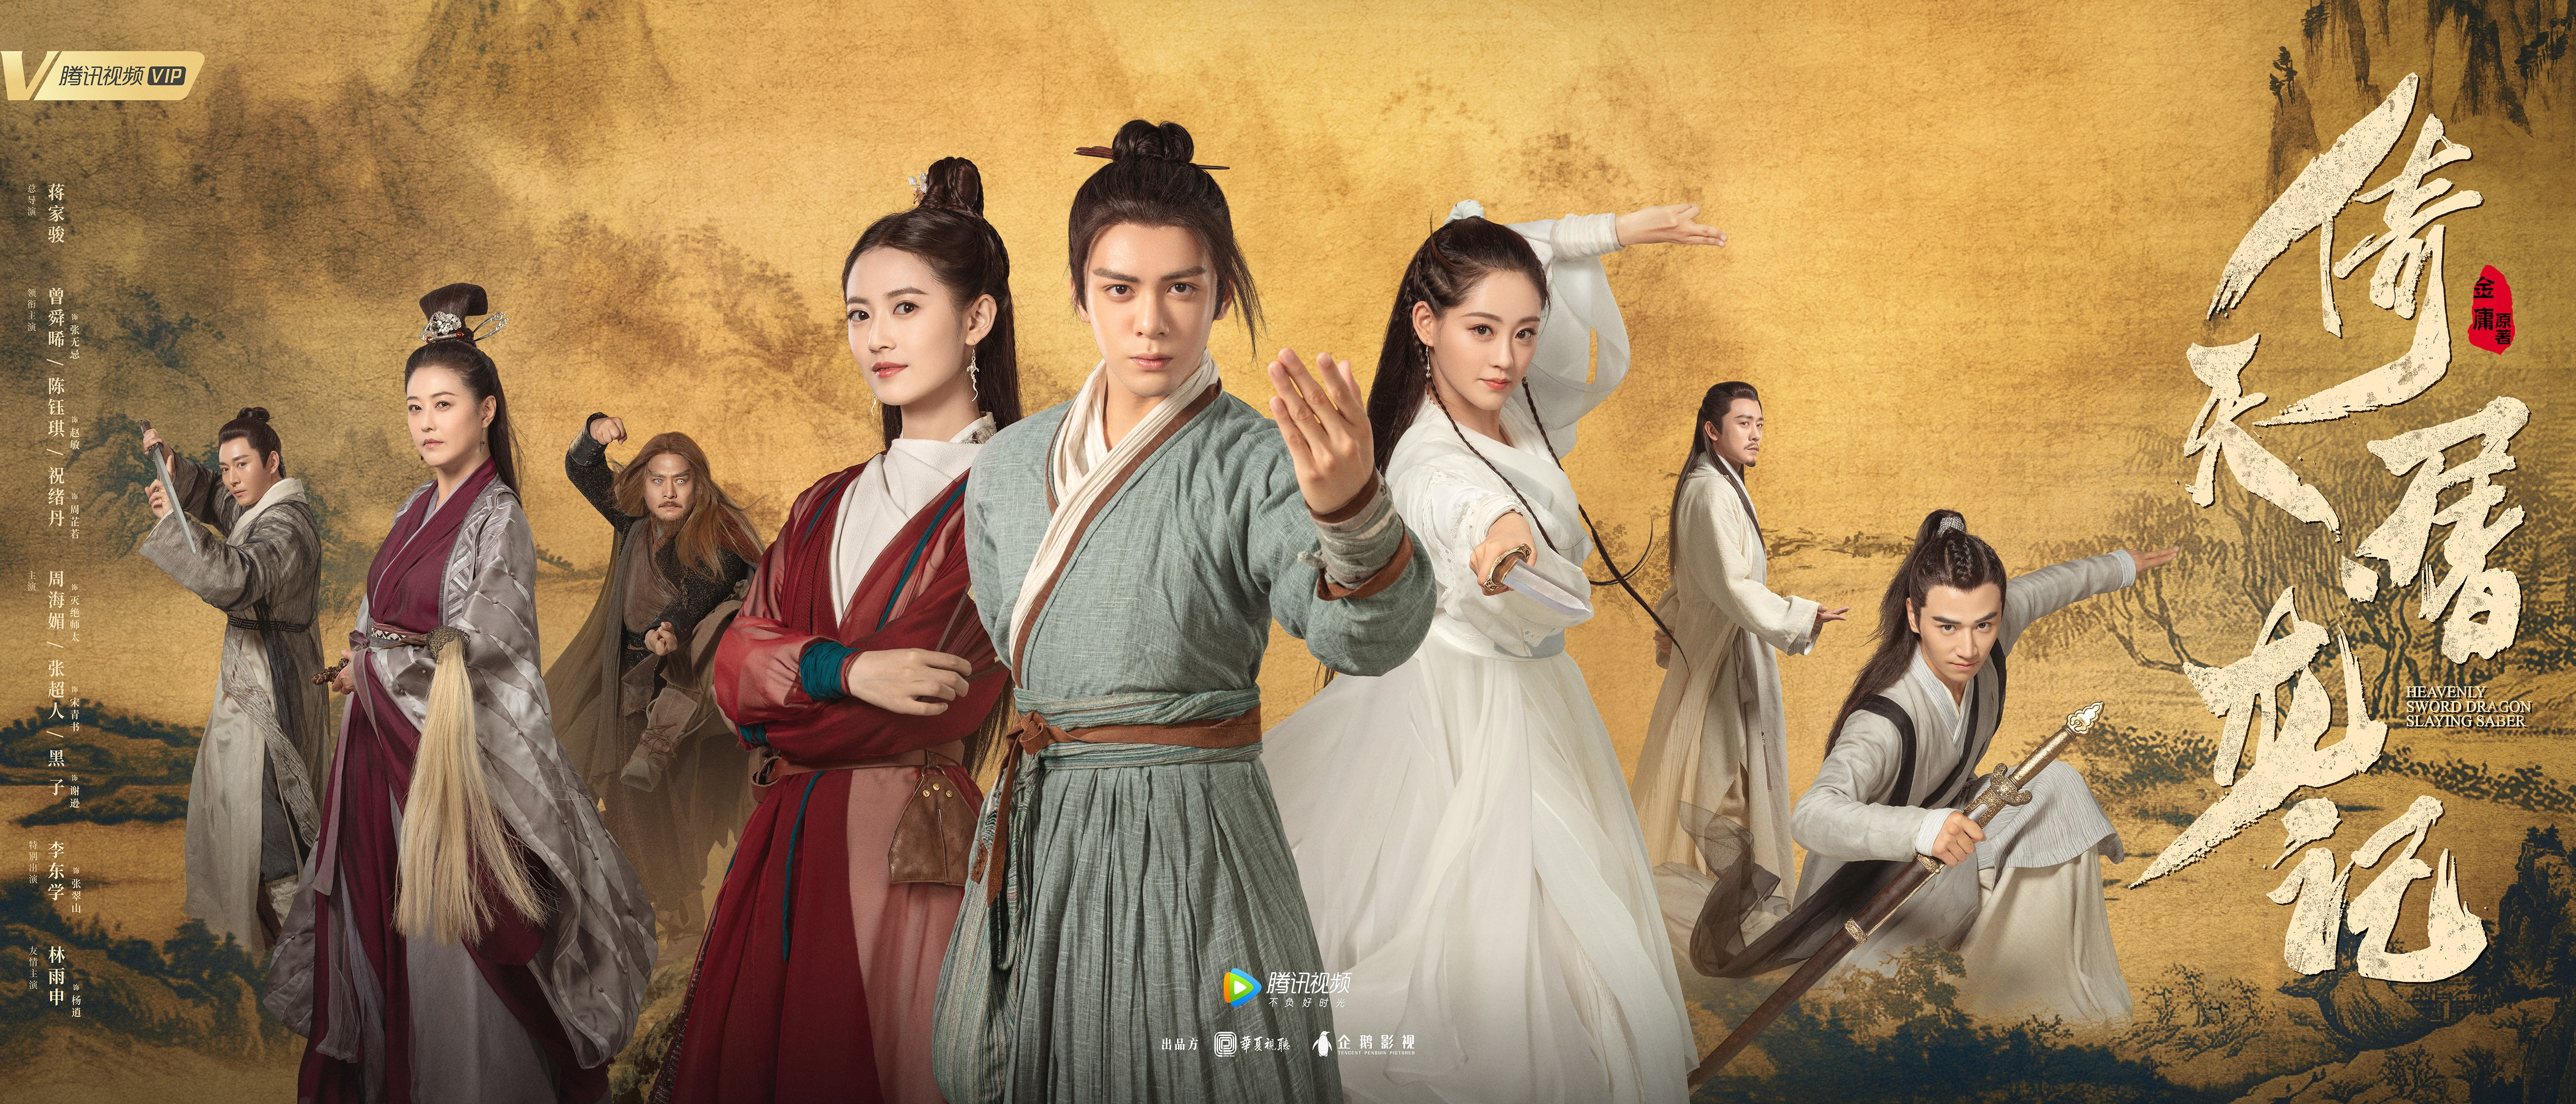 15 C-Dramas That Caused A Sensation in 2019 | Soompi